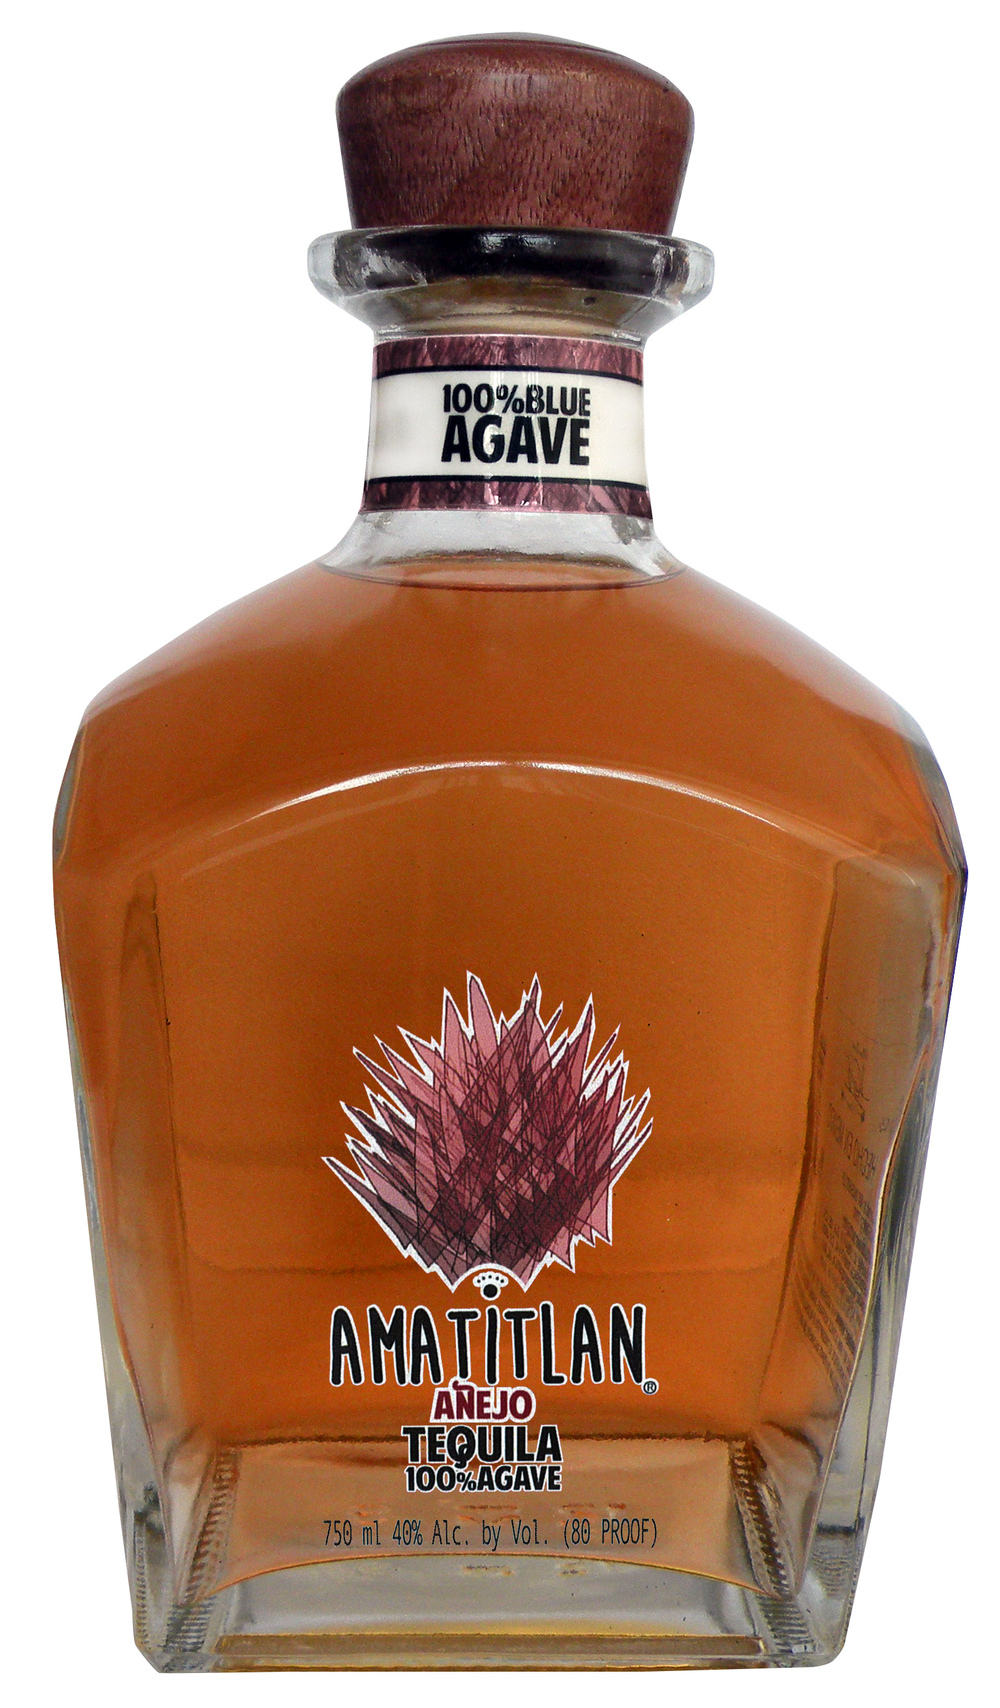 Tequila Amatitlan Anejo 750 ml £54.00 SOLD OUT